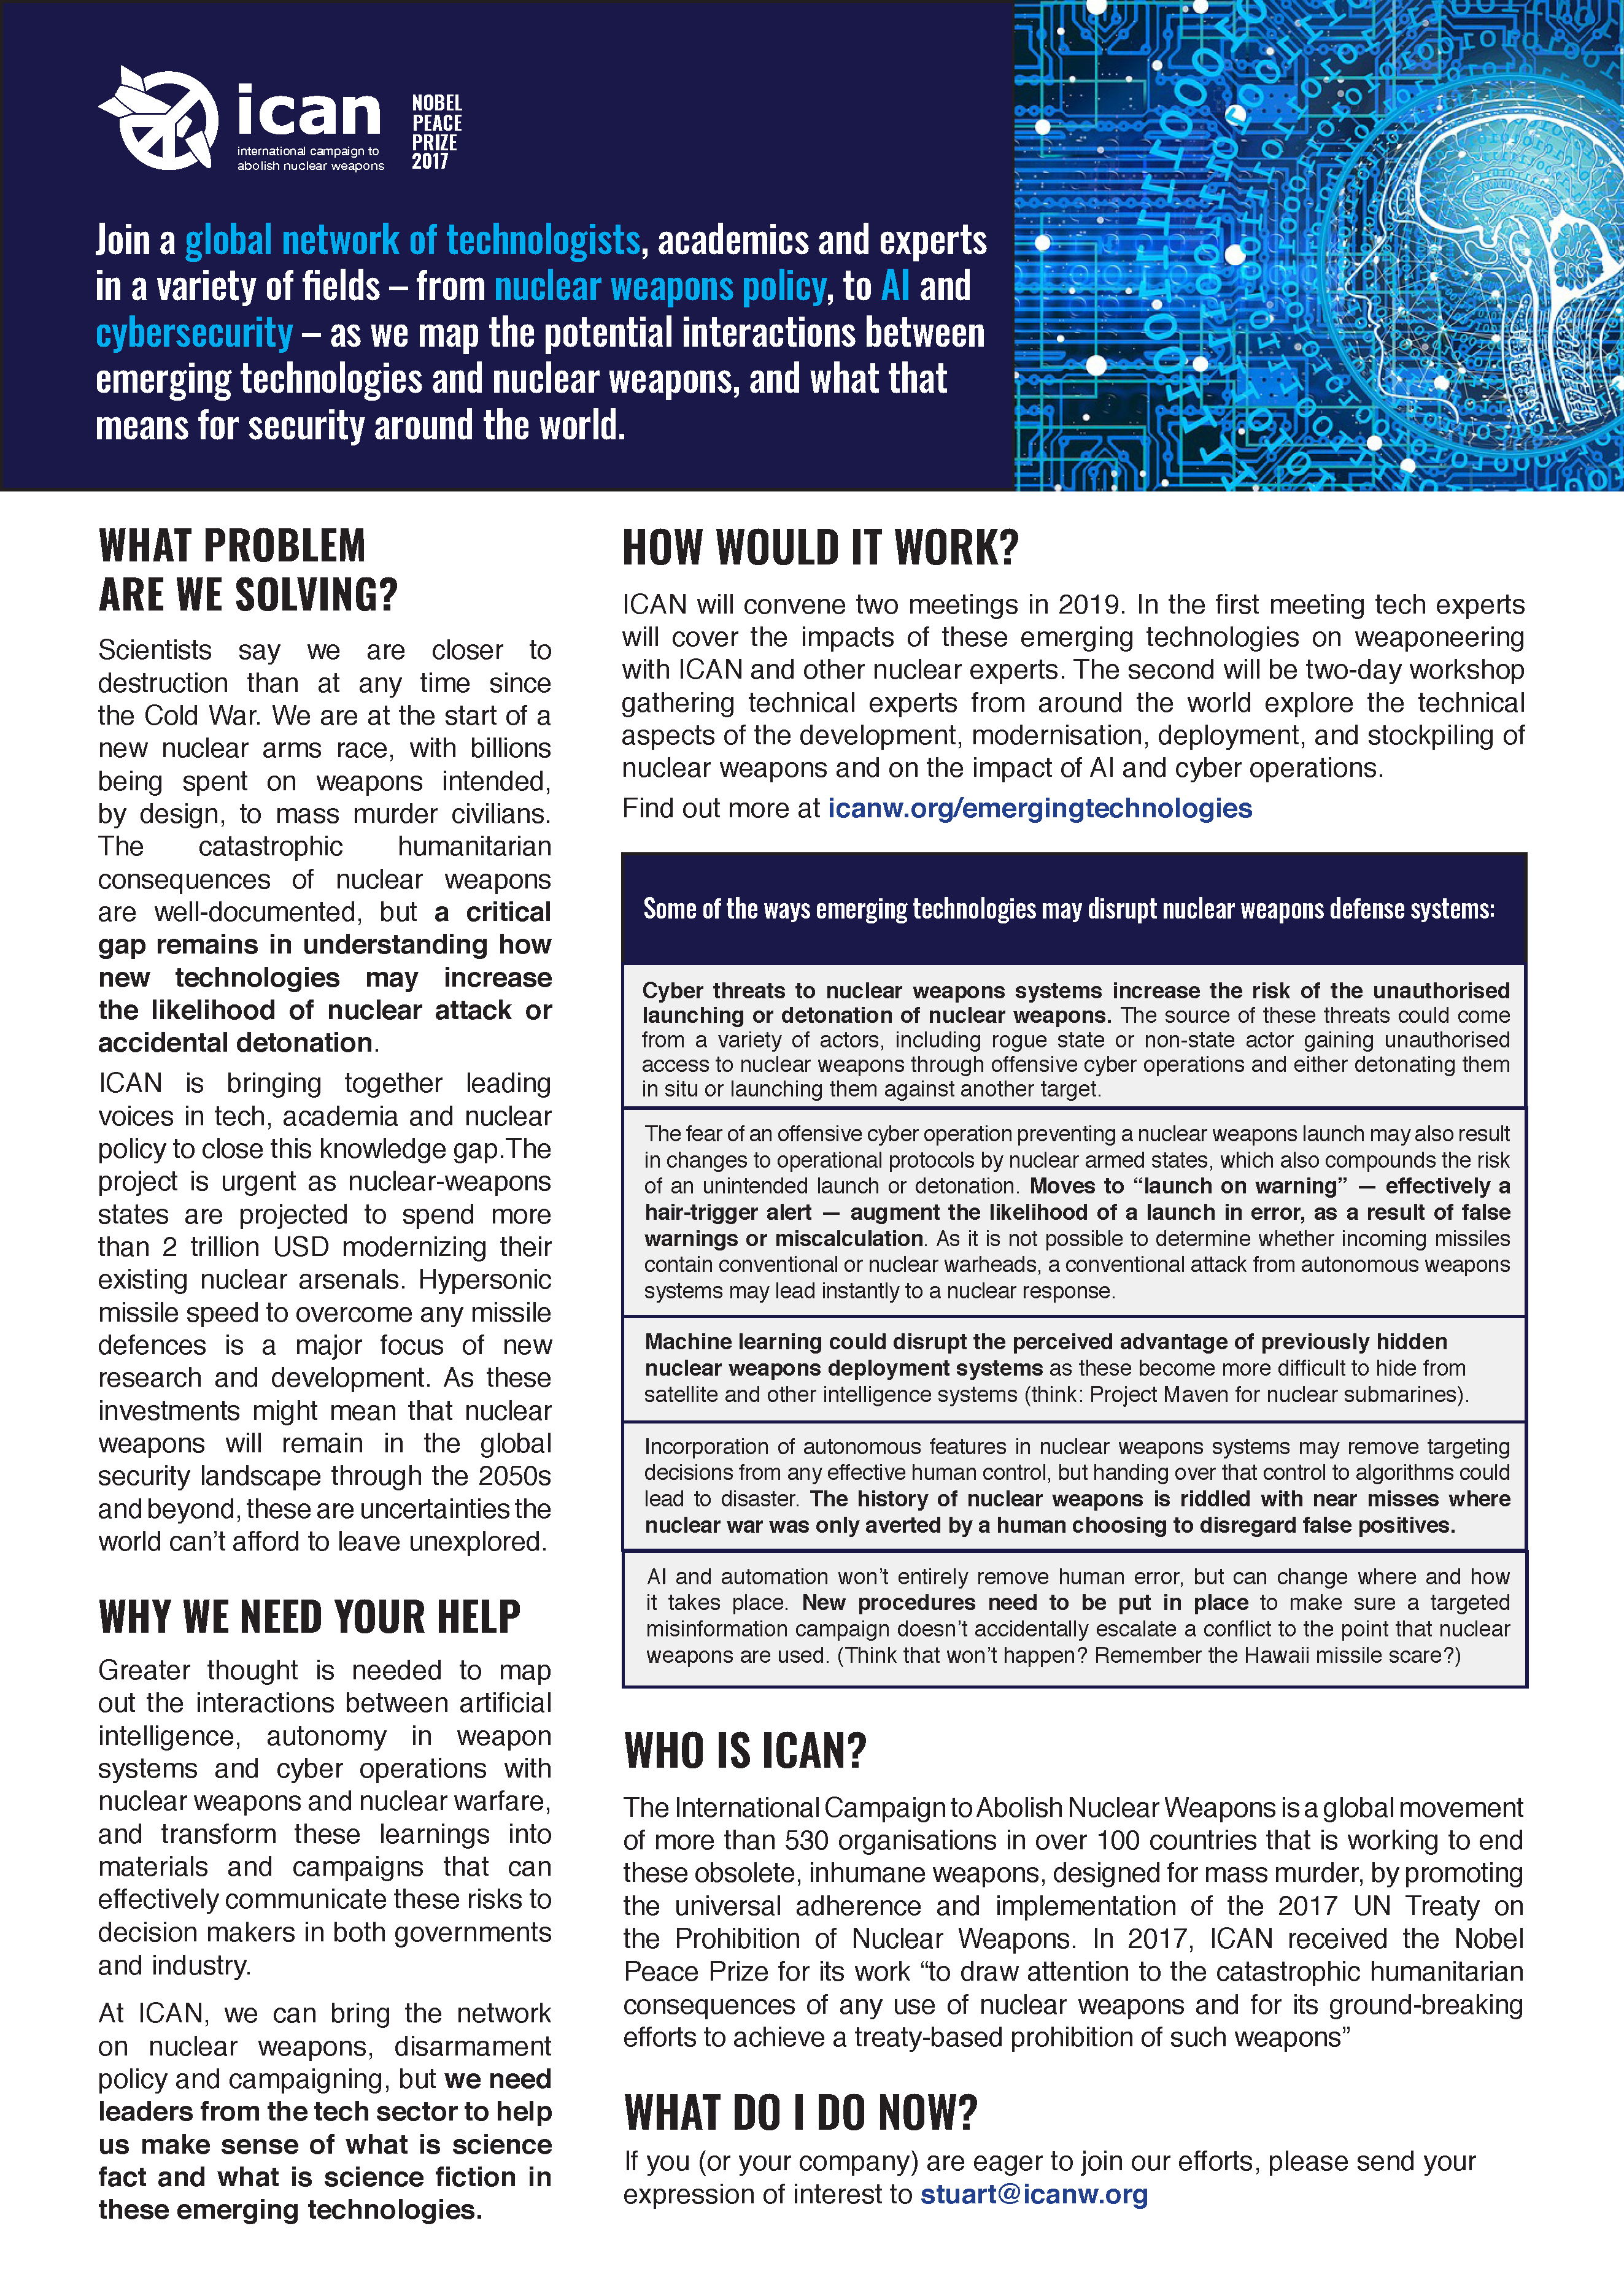 Flyer outlining the ICAN emerging technologies project